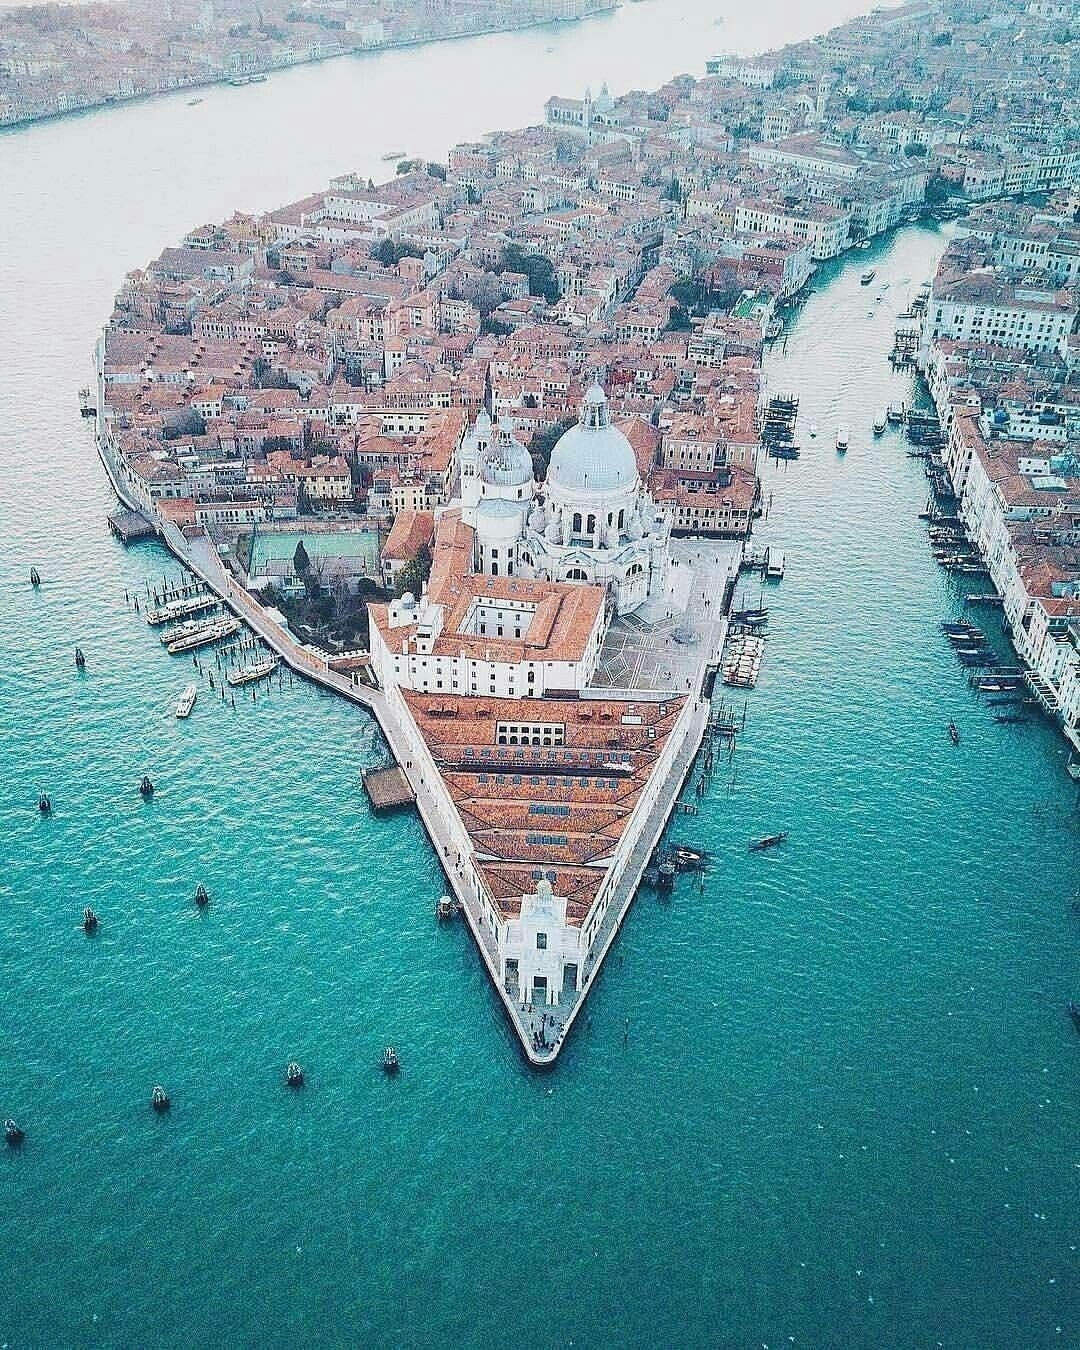 Venice seen from above